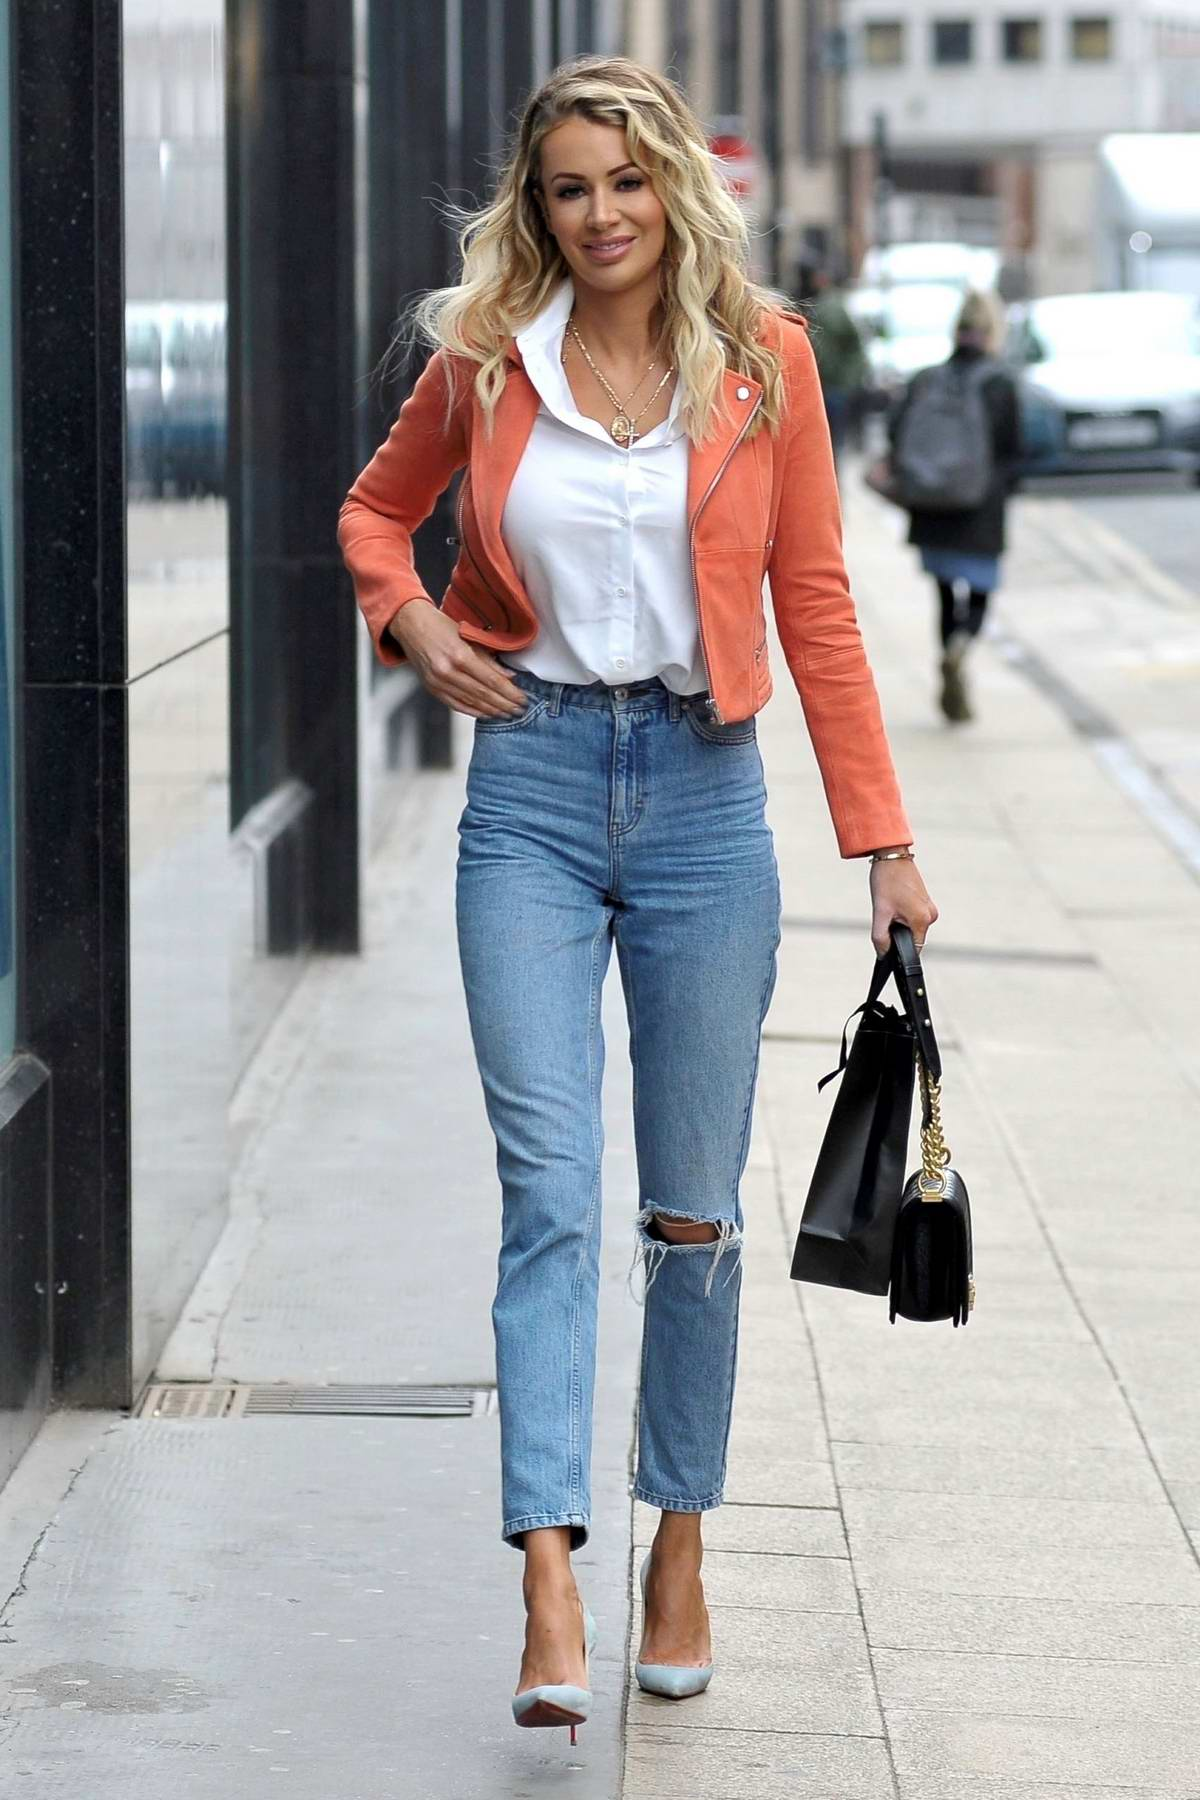 Olivia Attwood wears an orange jacket with a white shirt and jeans while out shopping in Manchester, UK